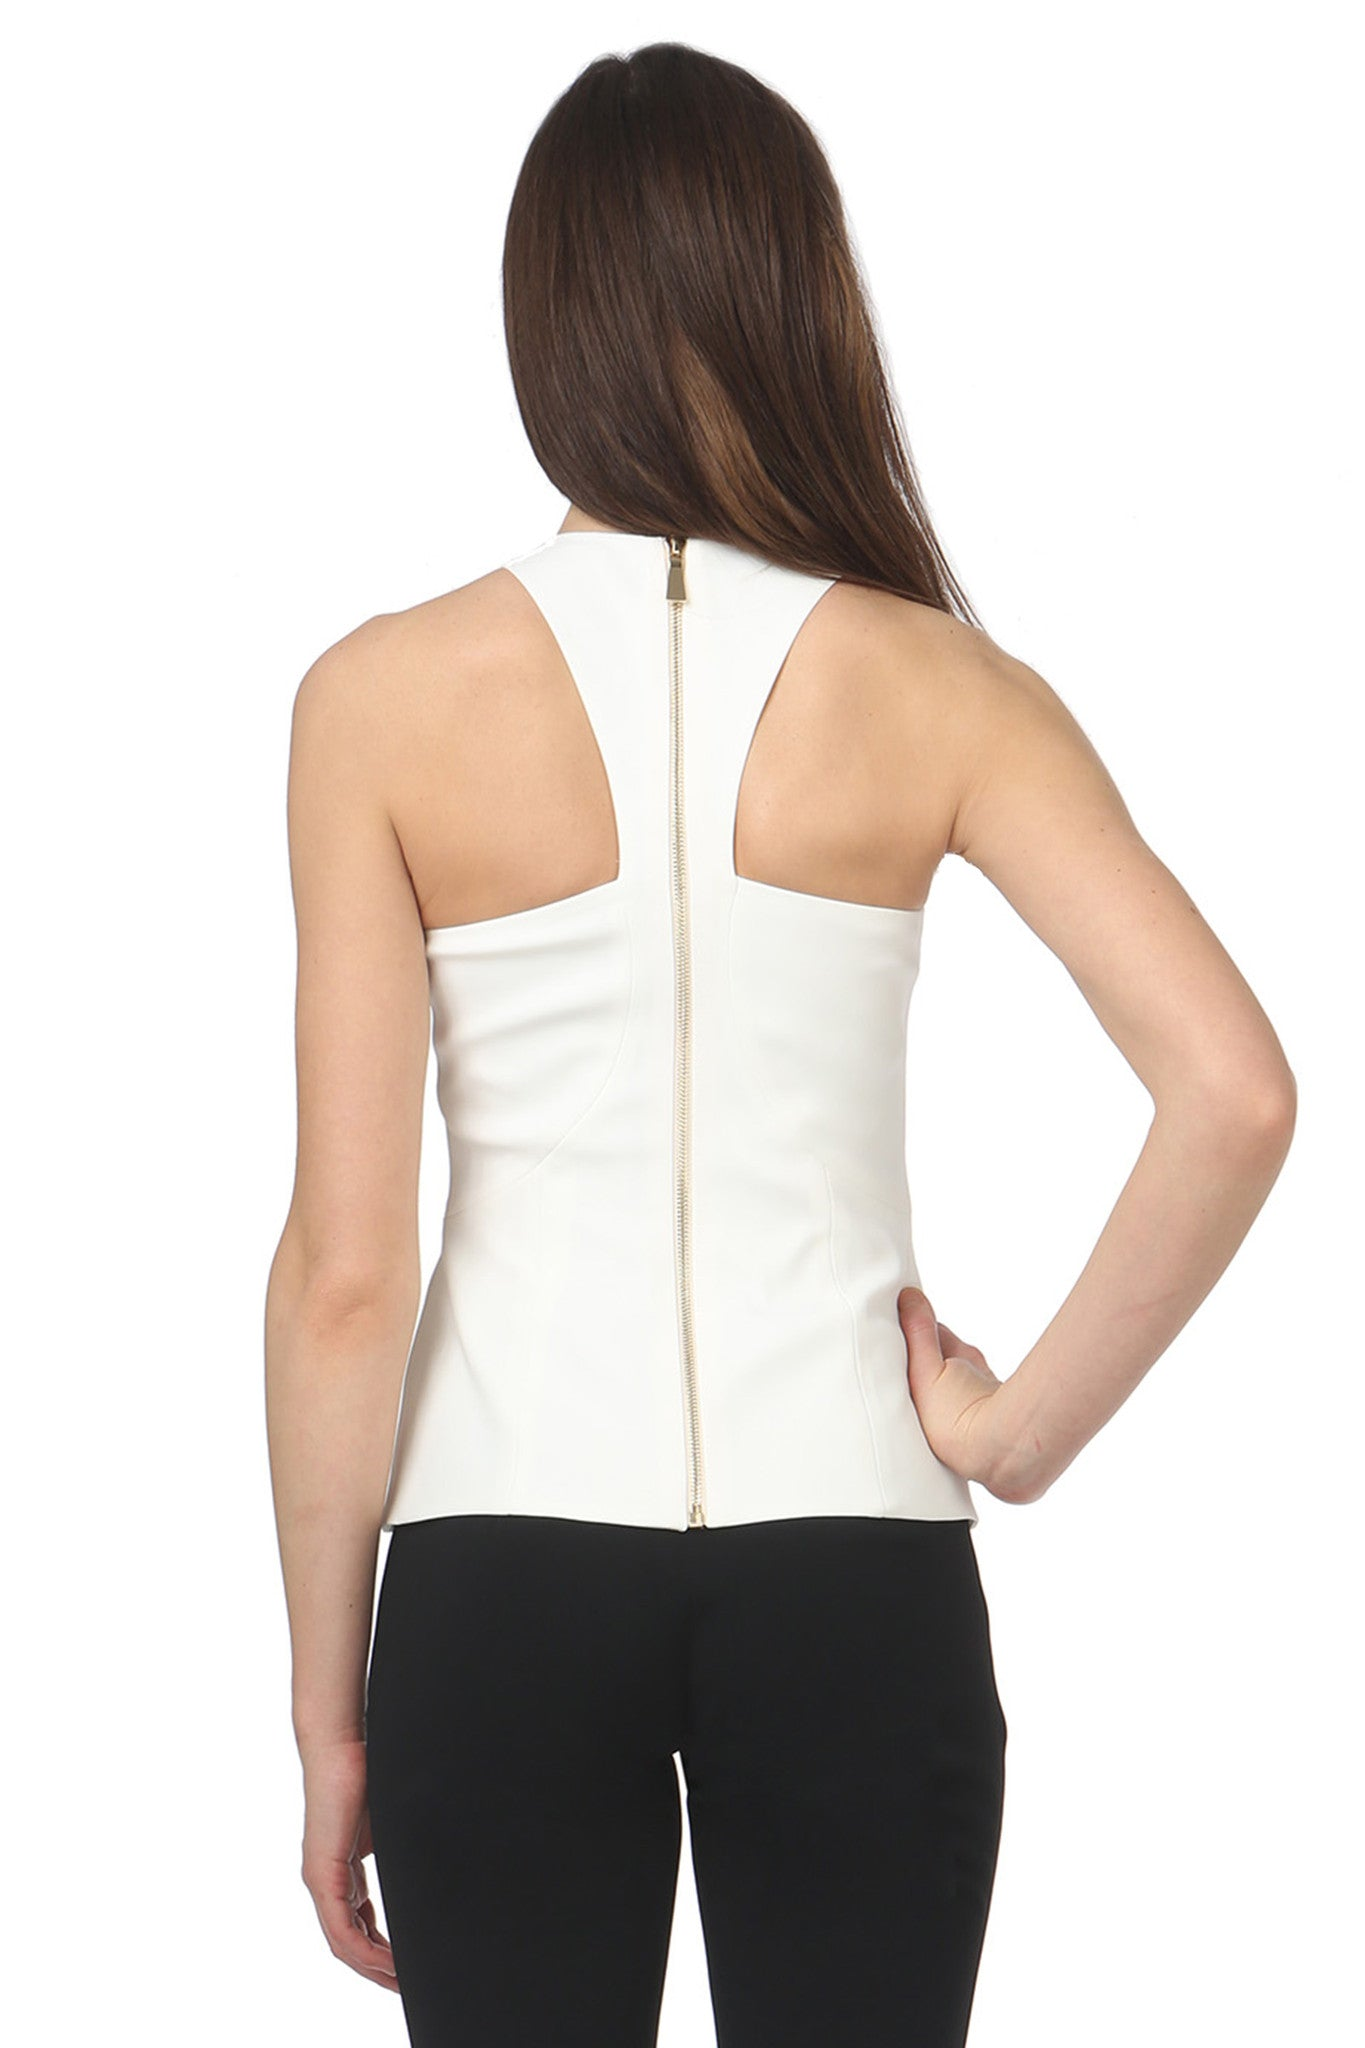 Jay Godfrey Ivory Racerneck Top - Back View